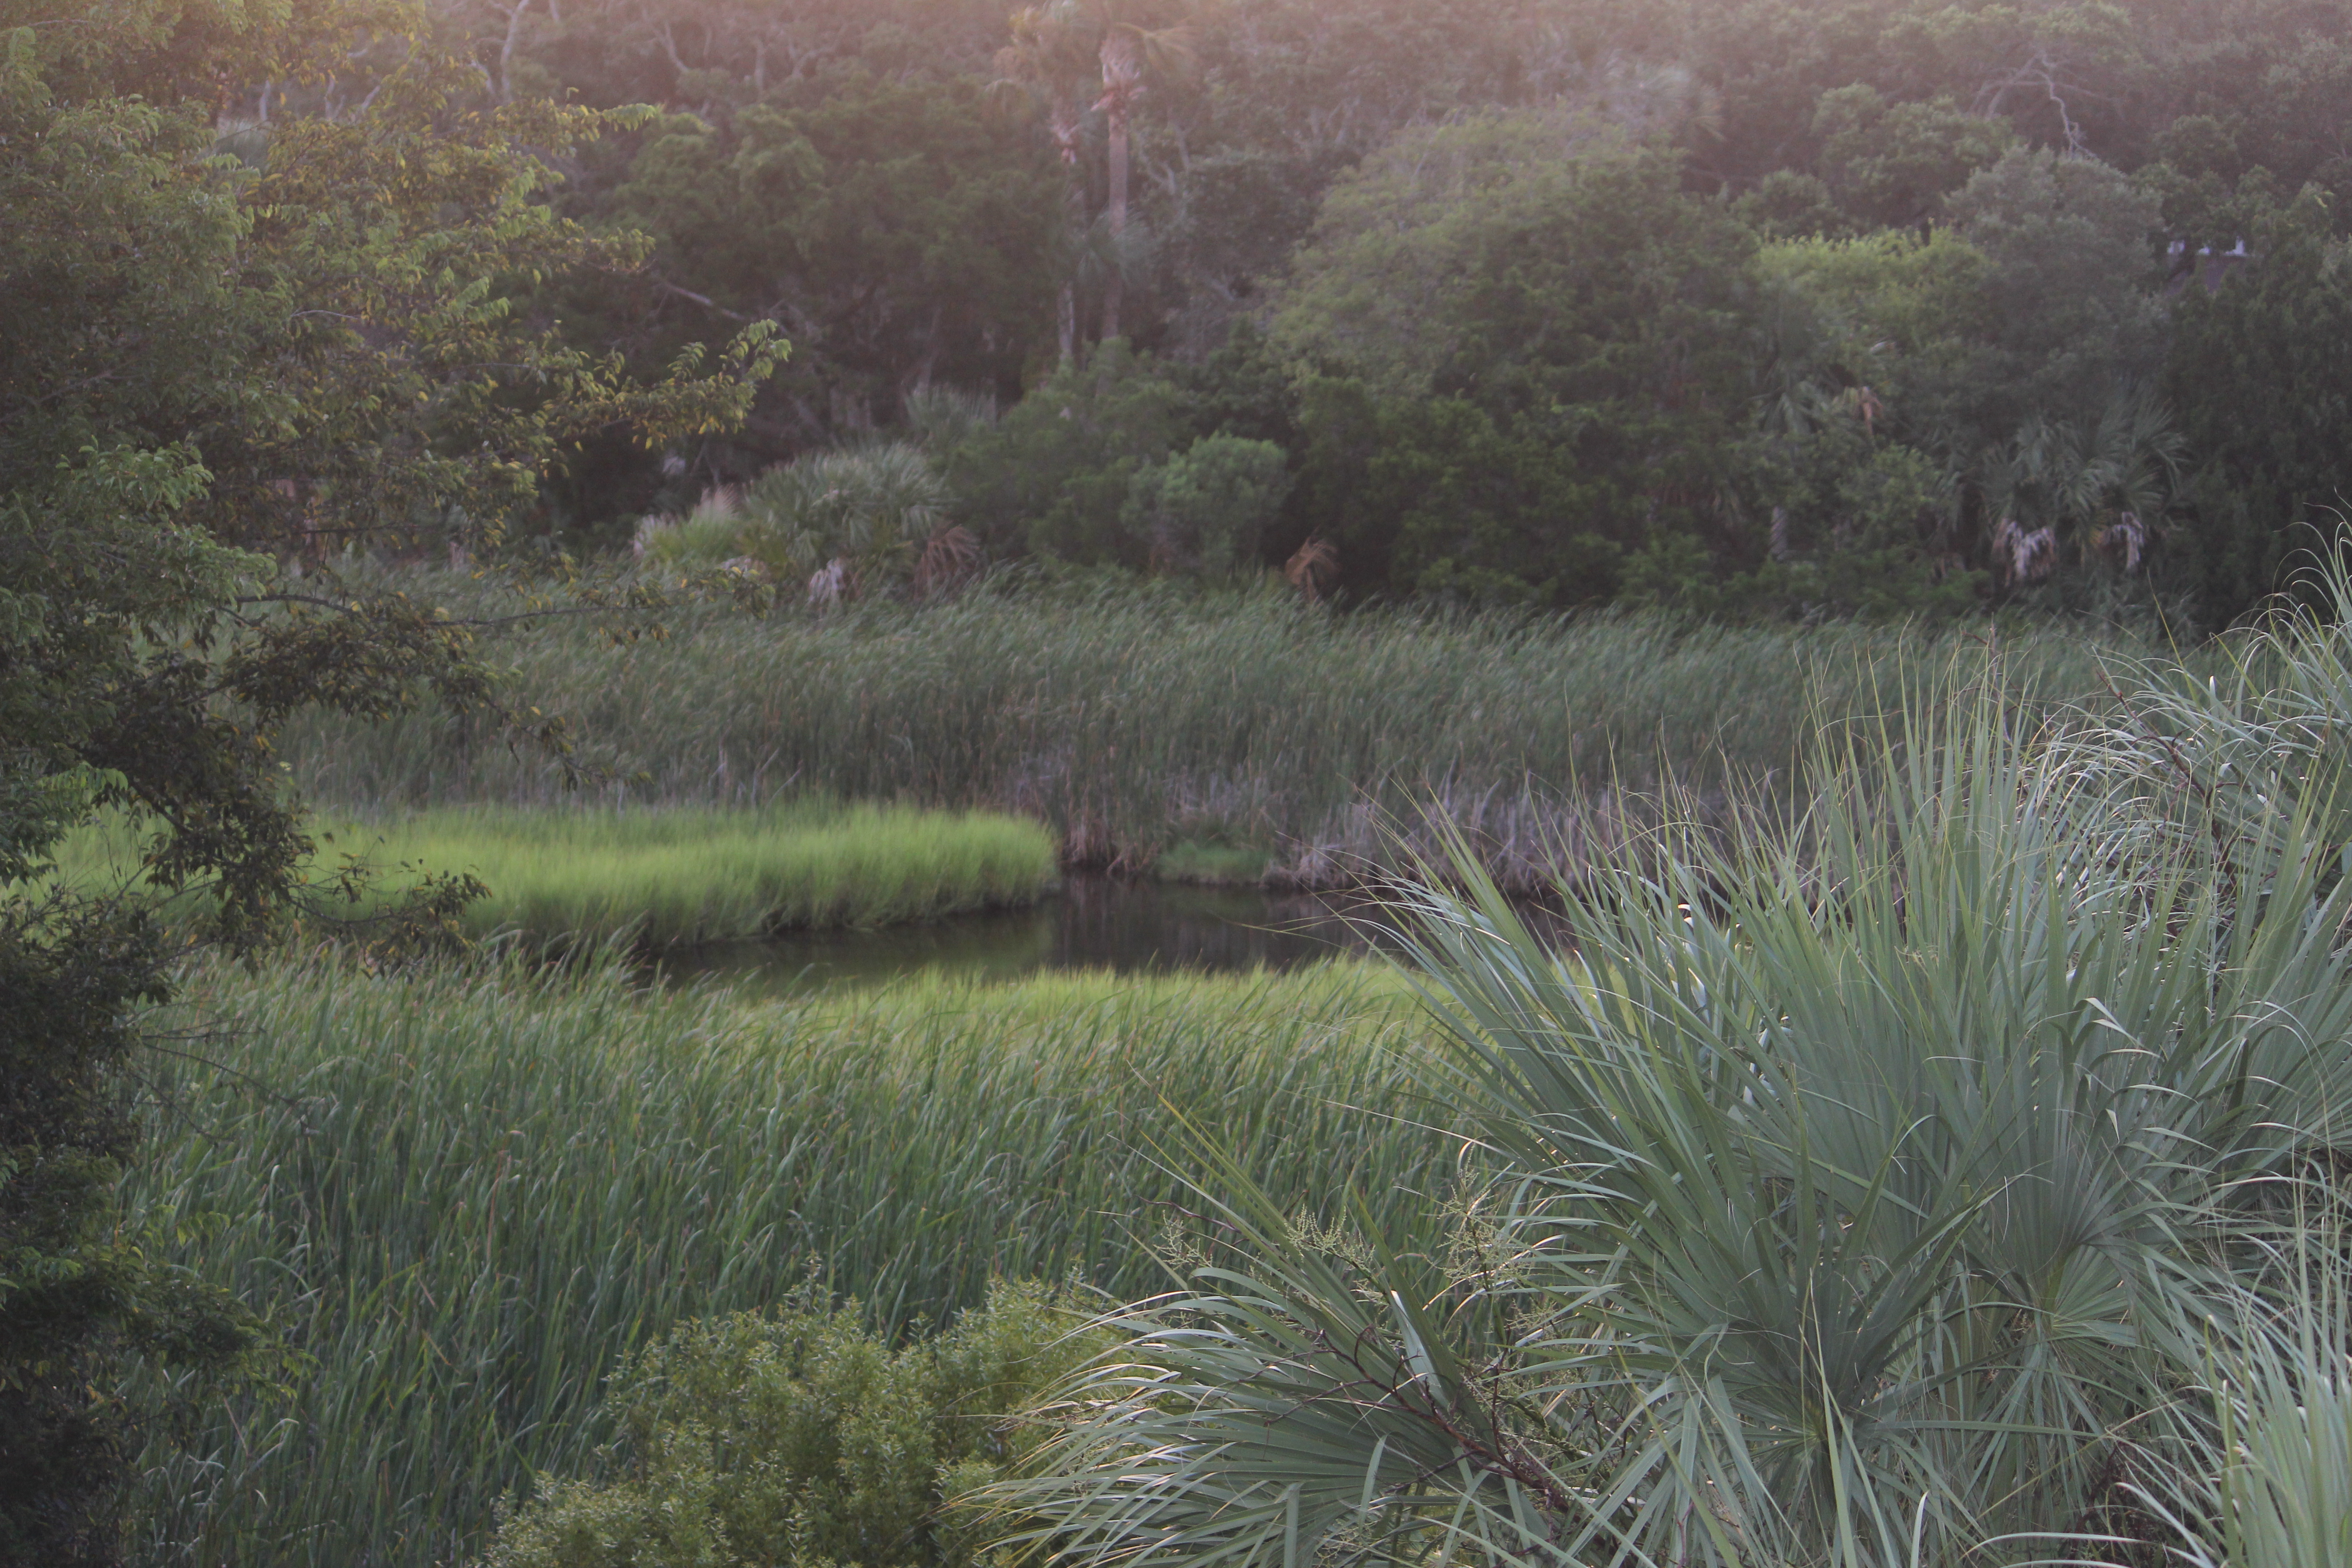 No matter the season, you will be treated to Seabrook's natural splendor.